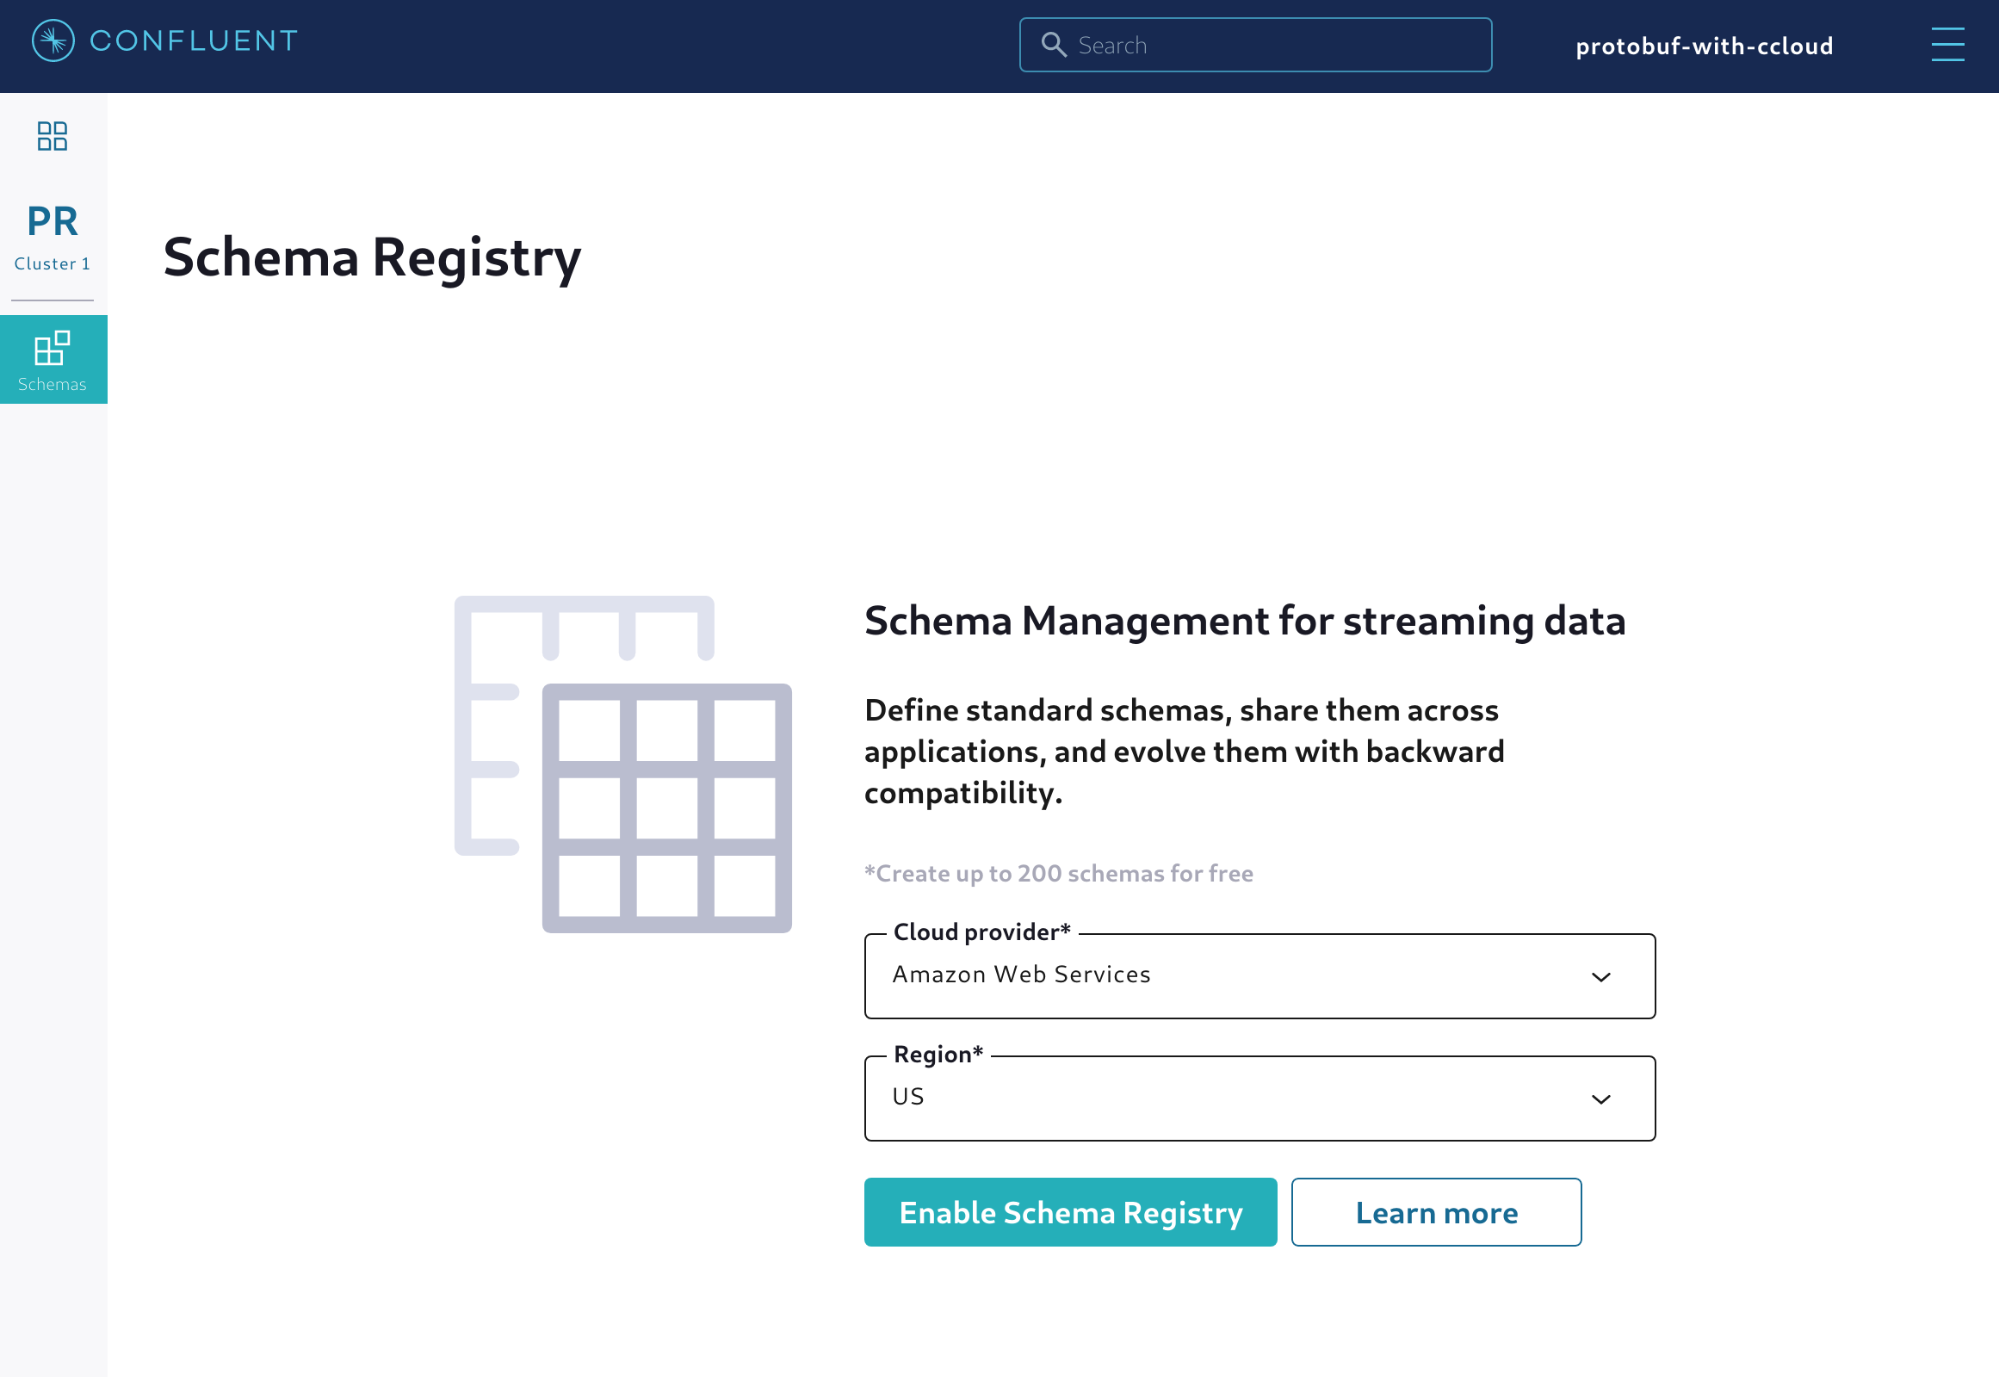 Choosing the cloud provider and region for the managed Schema Registry